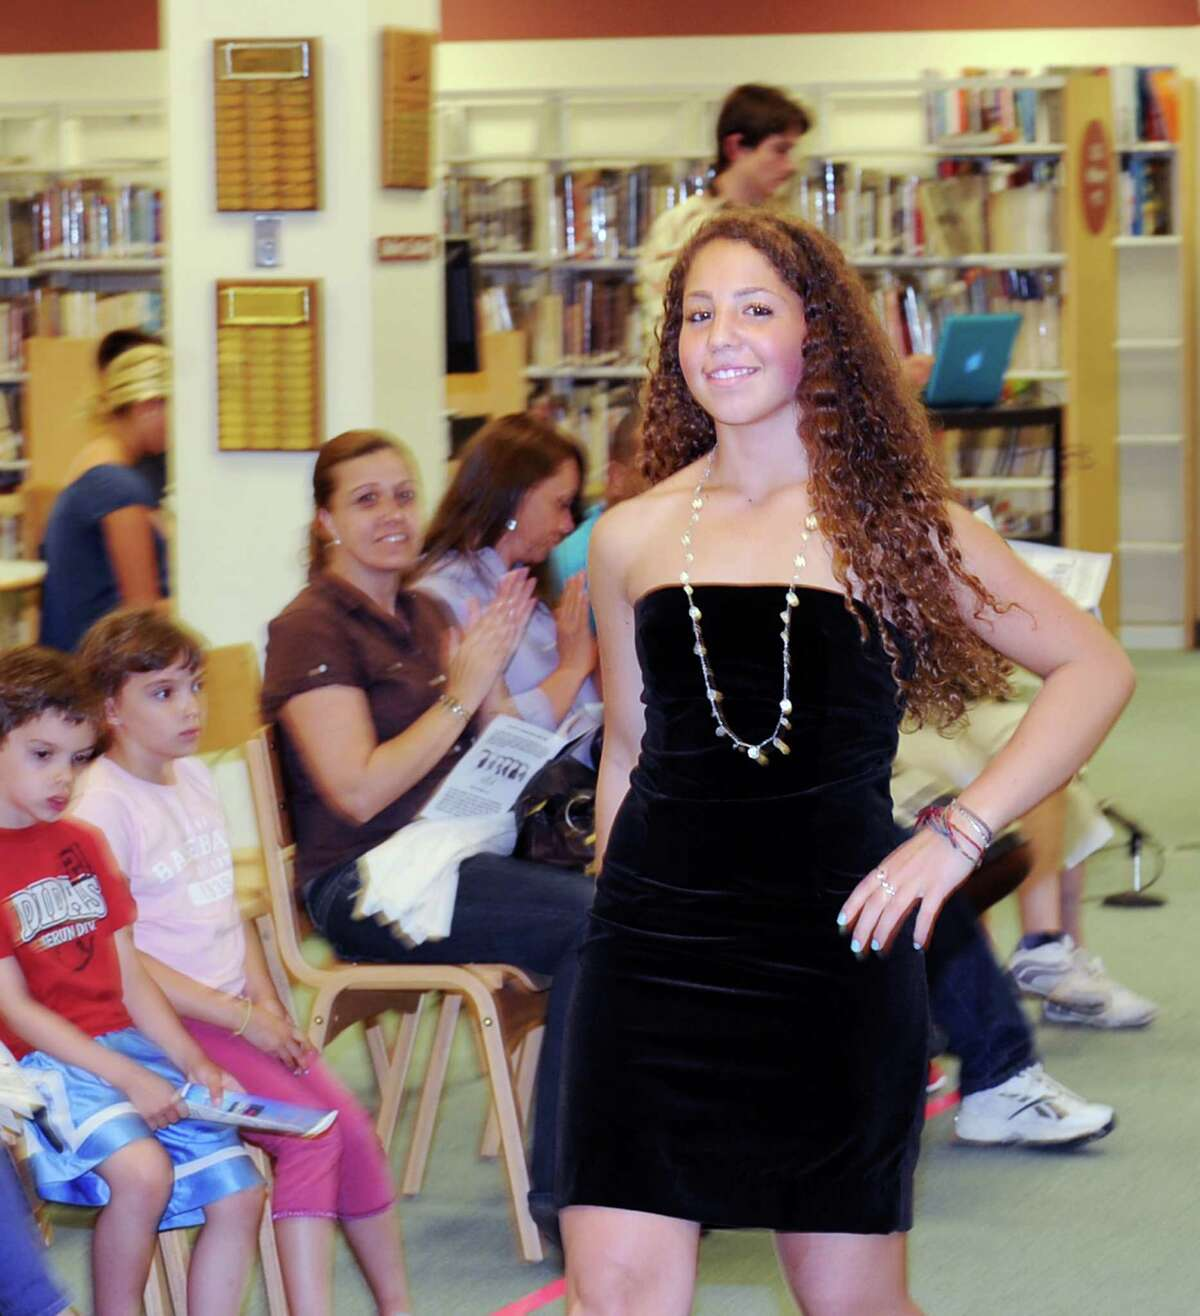 Greenwich High School freshman Michaela Ceci, 14, models a black dress during the annual Greenwich High School Fashion Show put on by the school's fashion classes in the media center at the school, Thursday, June 7, 2012.